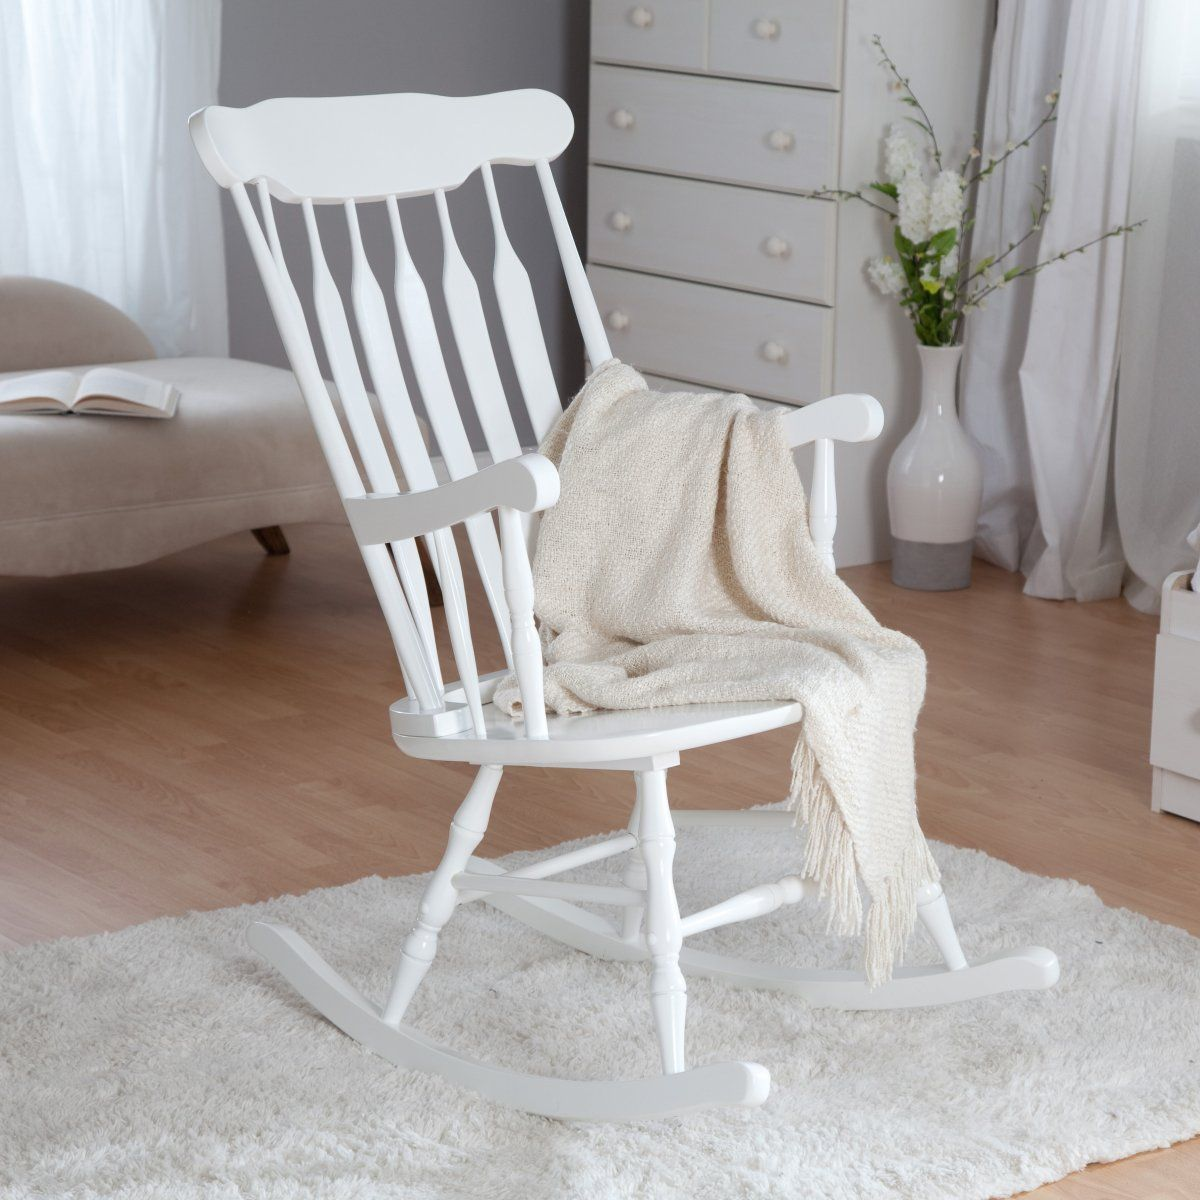 blue nursery chair table and rentals sacramento kidkraft rocker white rocking chairs at